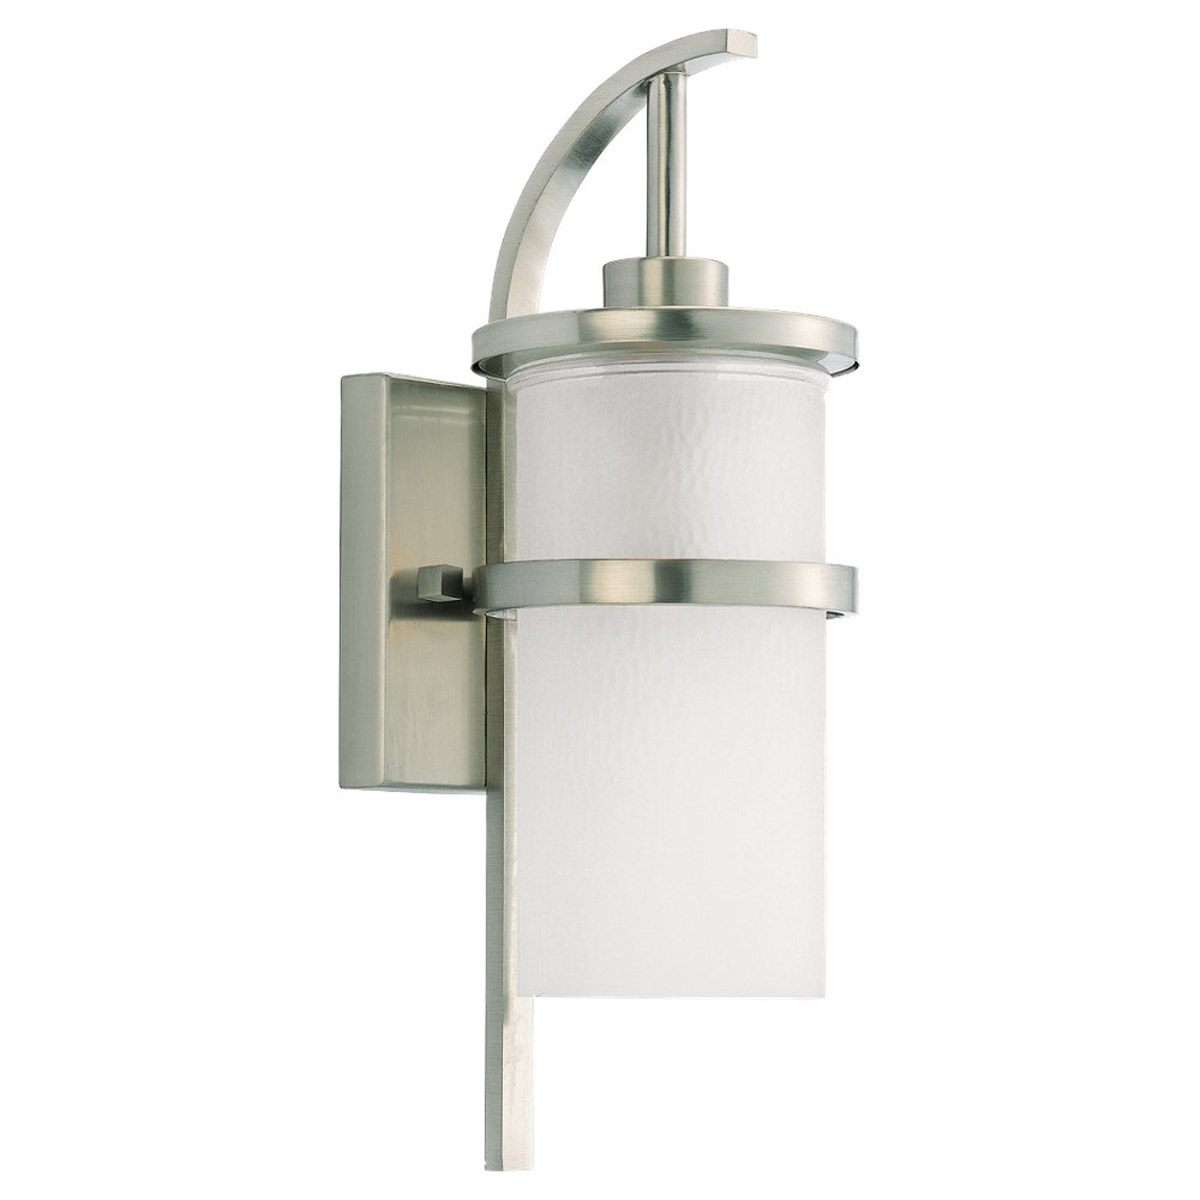 Sea Gull Lighting Eternity 1 Light Outdoor Wall Lantern in Brushed Nickel 88117-962